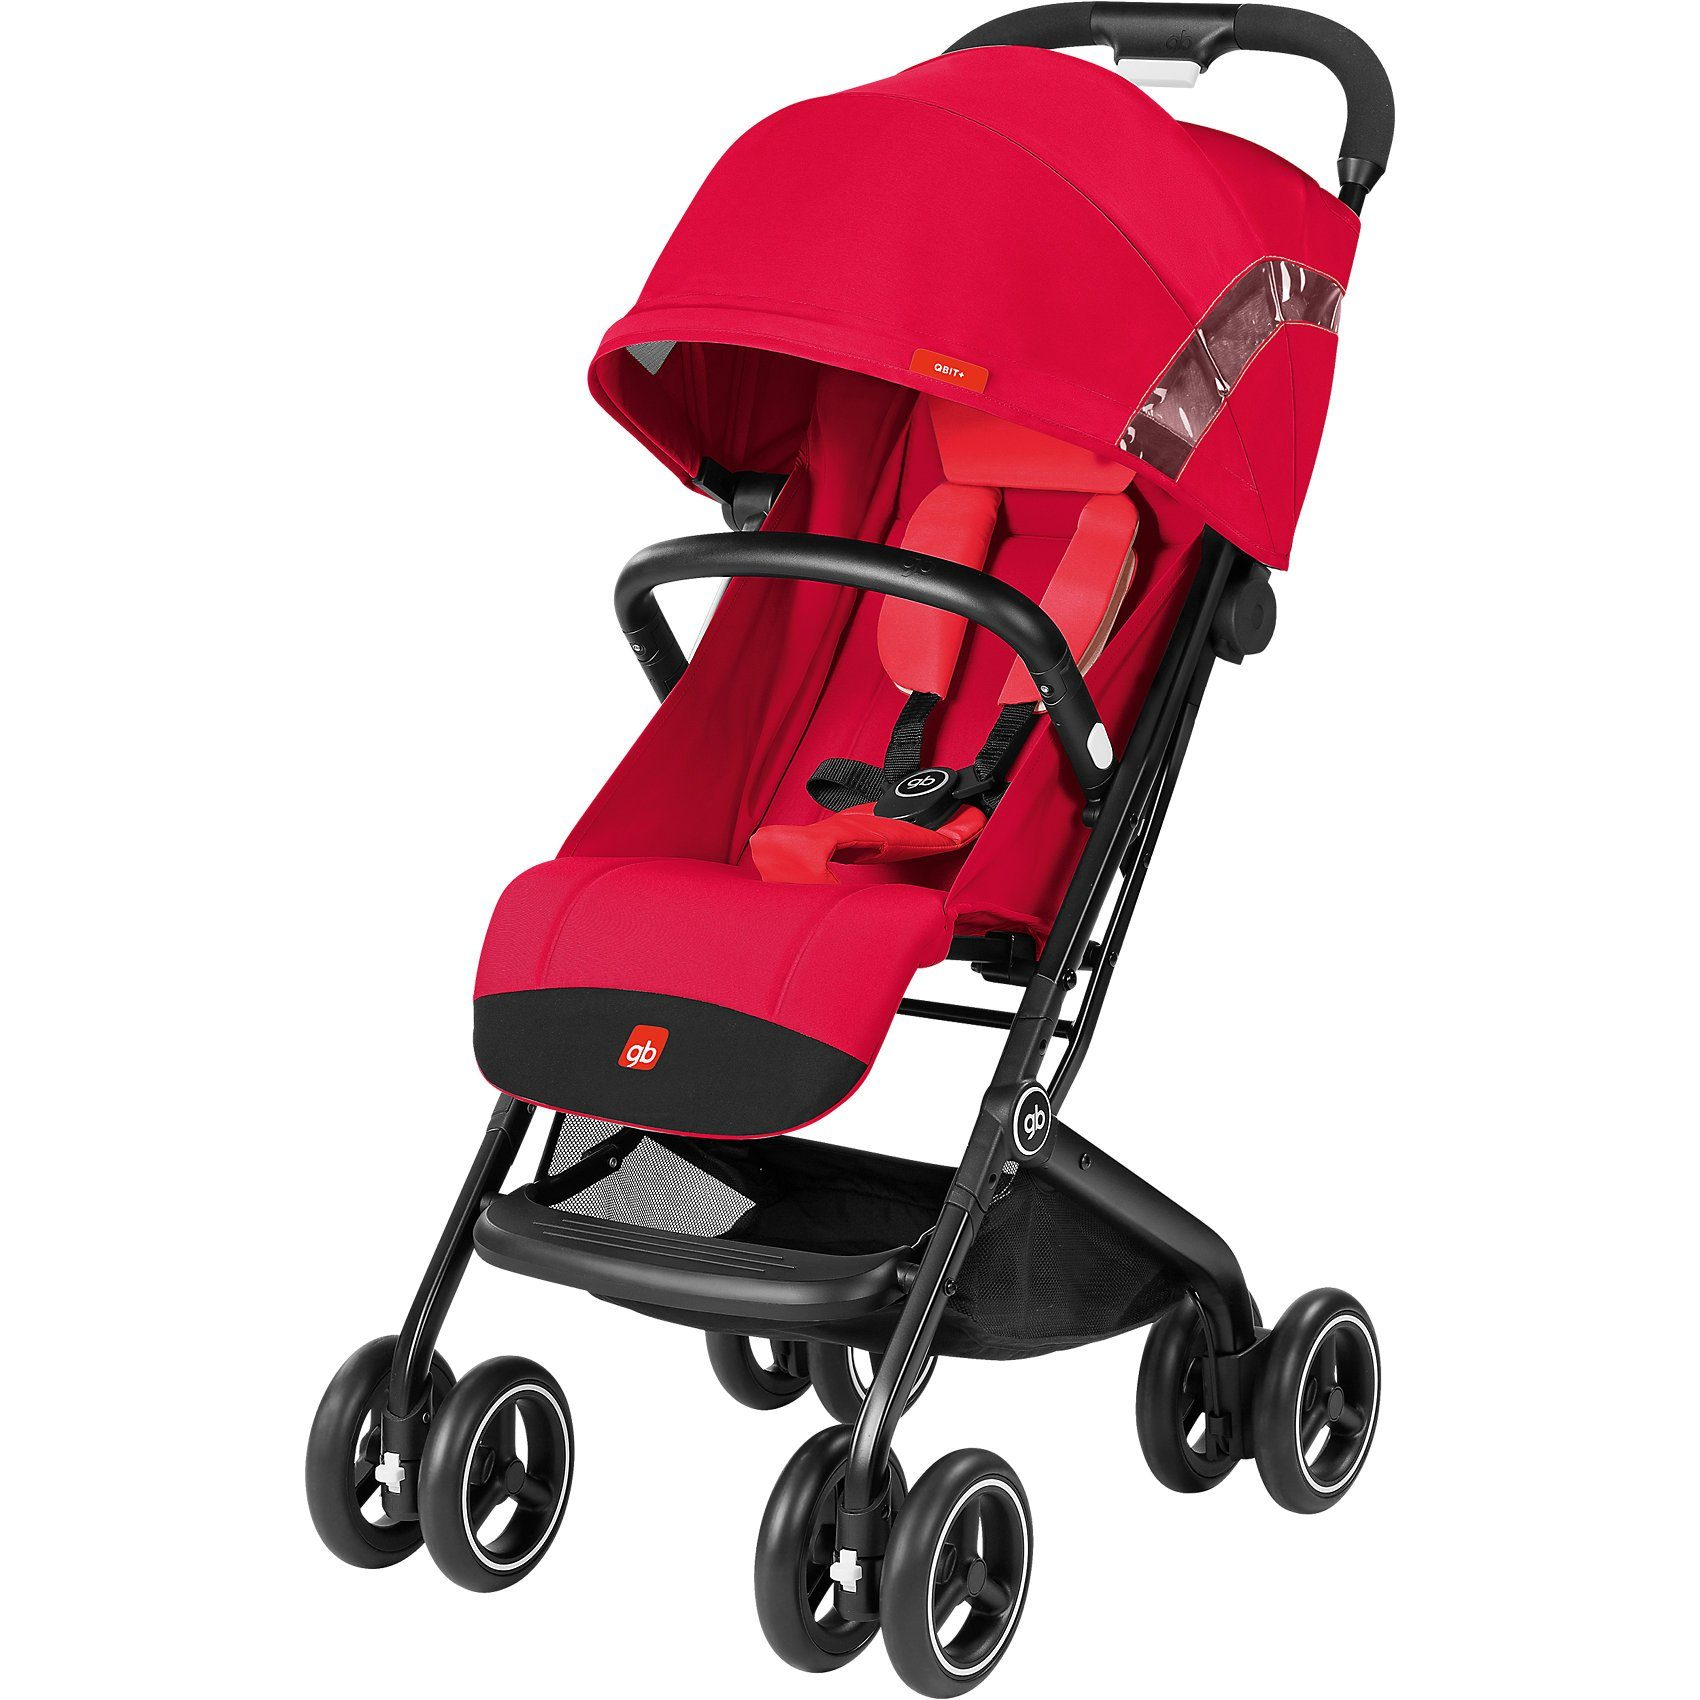 Goodbaby Sportwagen QBIT+, Cherry Red-red, 2018